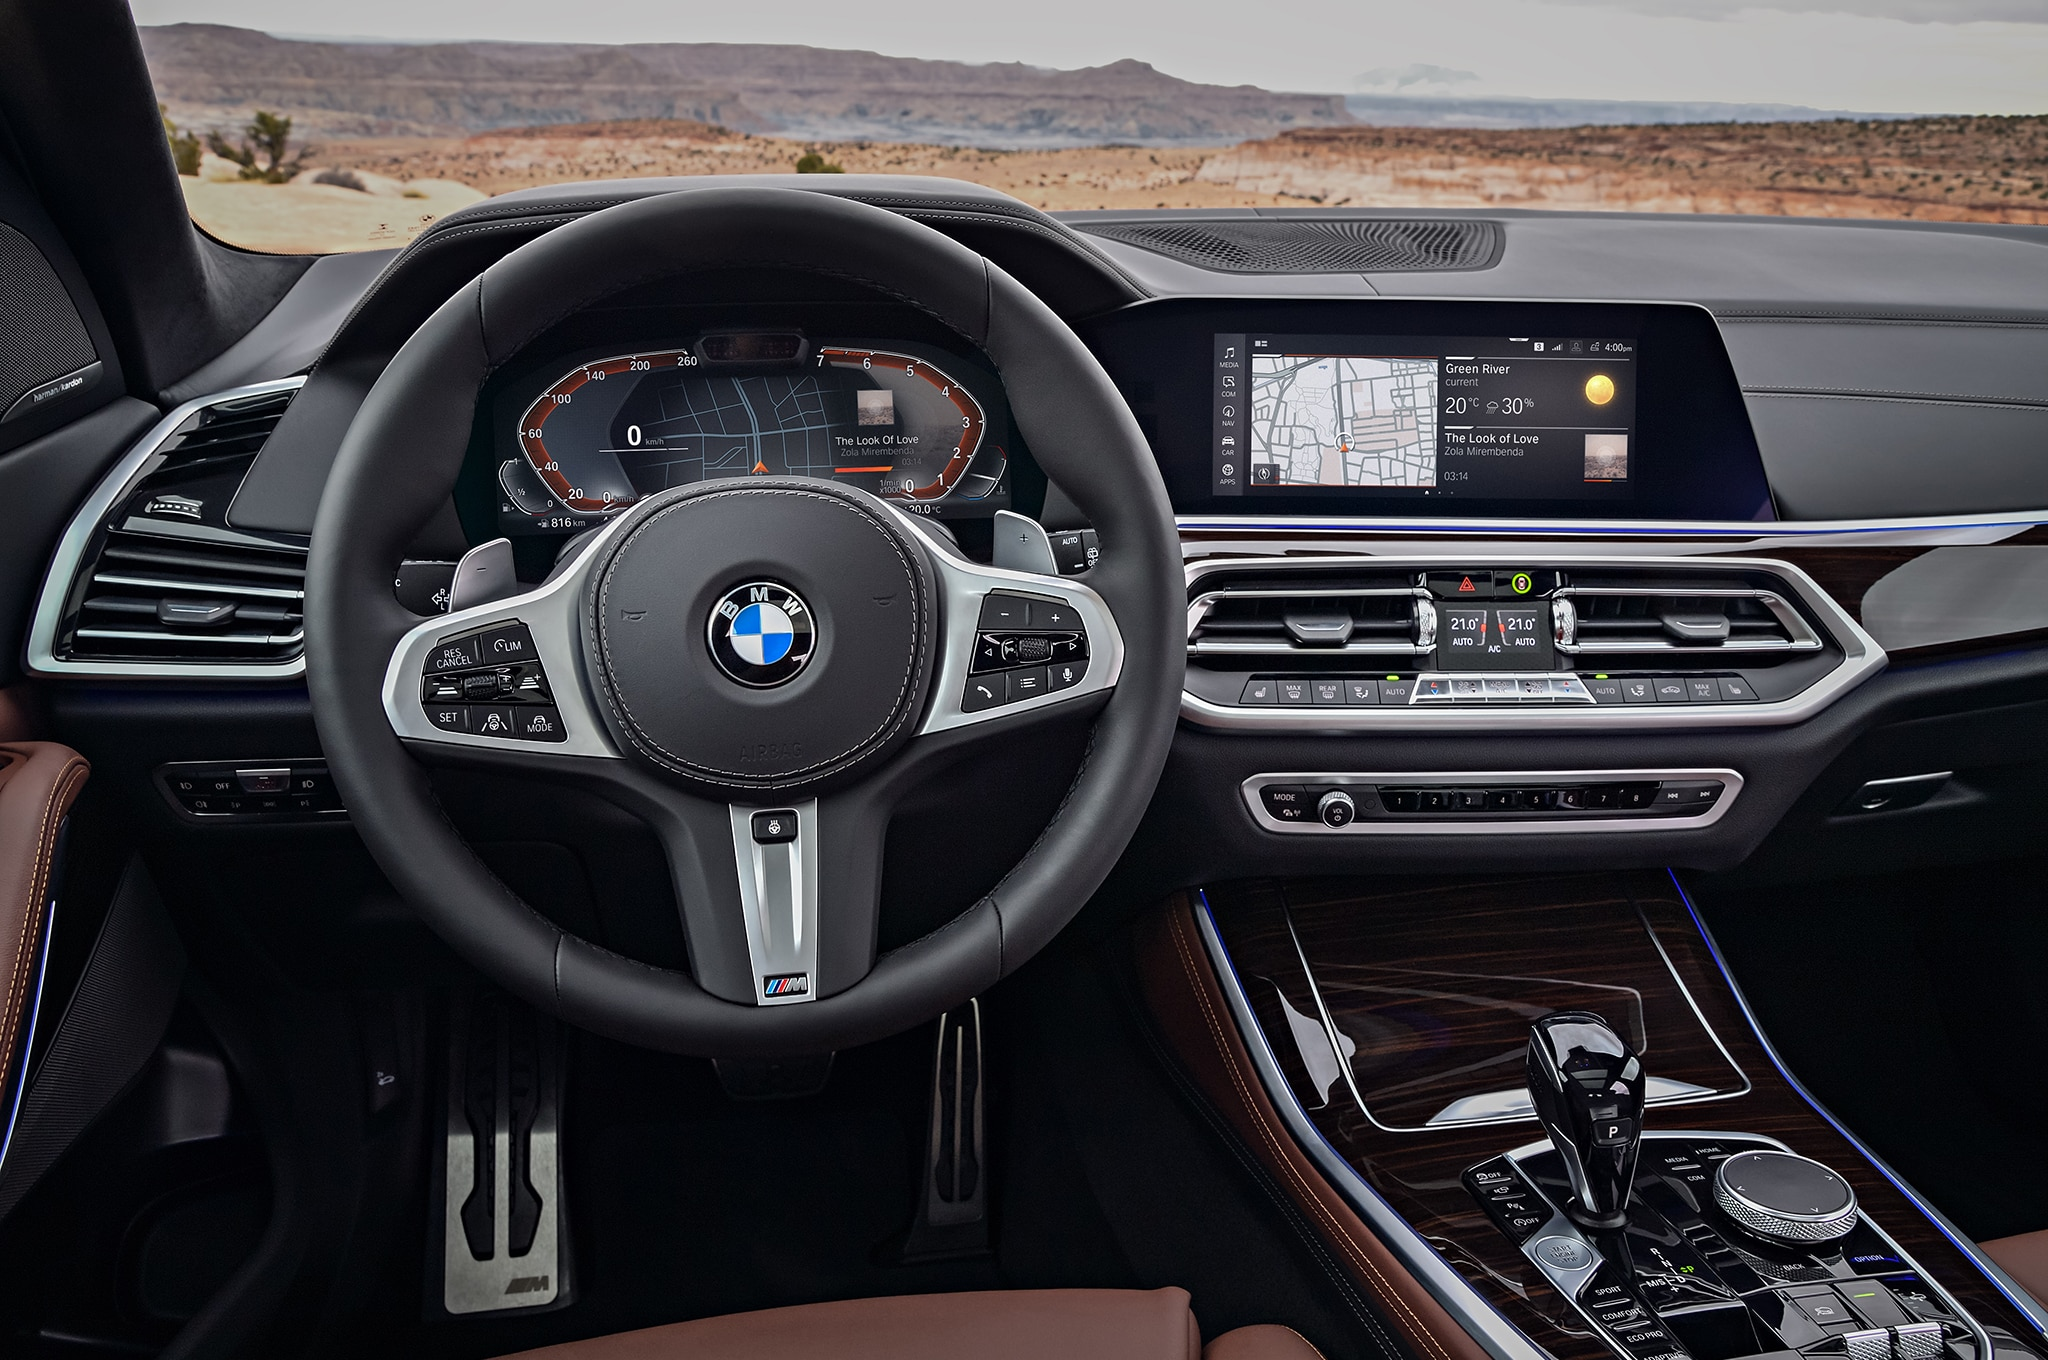 2019 bmw x5 xdrive50i 2019 BMW X5 Offers More Horsepower and a Little Less Torque  2019 bmw x5 xdrive50i